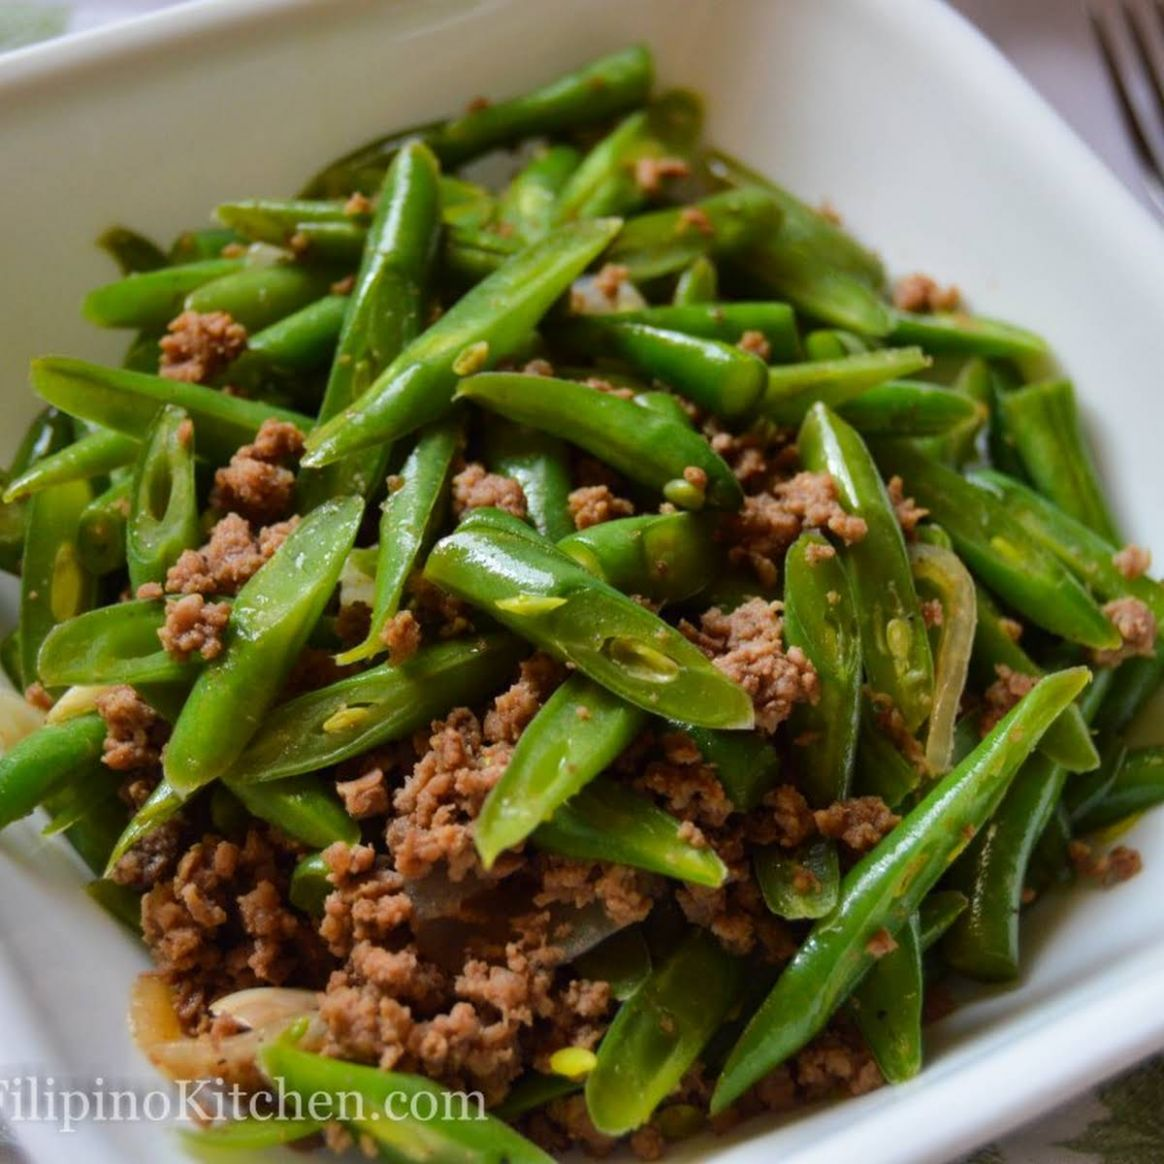 Sautéed Green Beans With Ground Beef (Filipino-style Ginisang Baguio Beans) - Vegetable Recipes In The Philippines